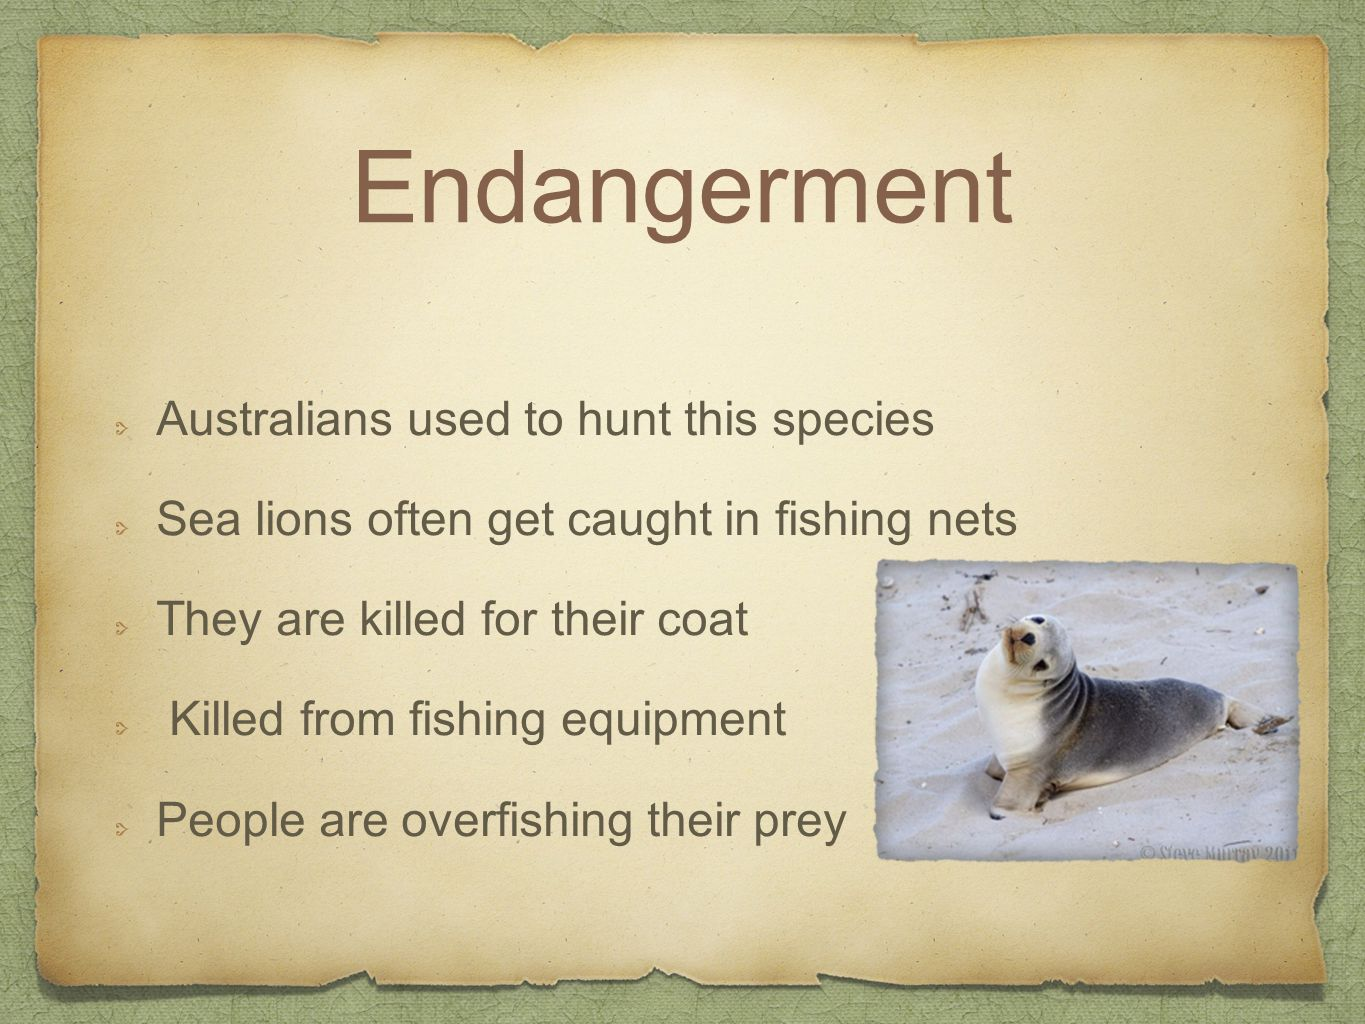 Endangerment Australians used to hunt this species Sea lions often get caught in fishing nets They are killed for their coat Killed from fishing equipment People are overfishing their prey